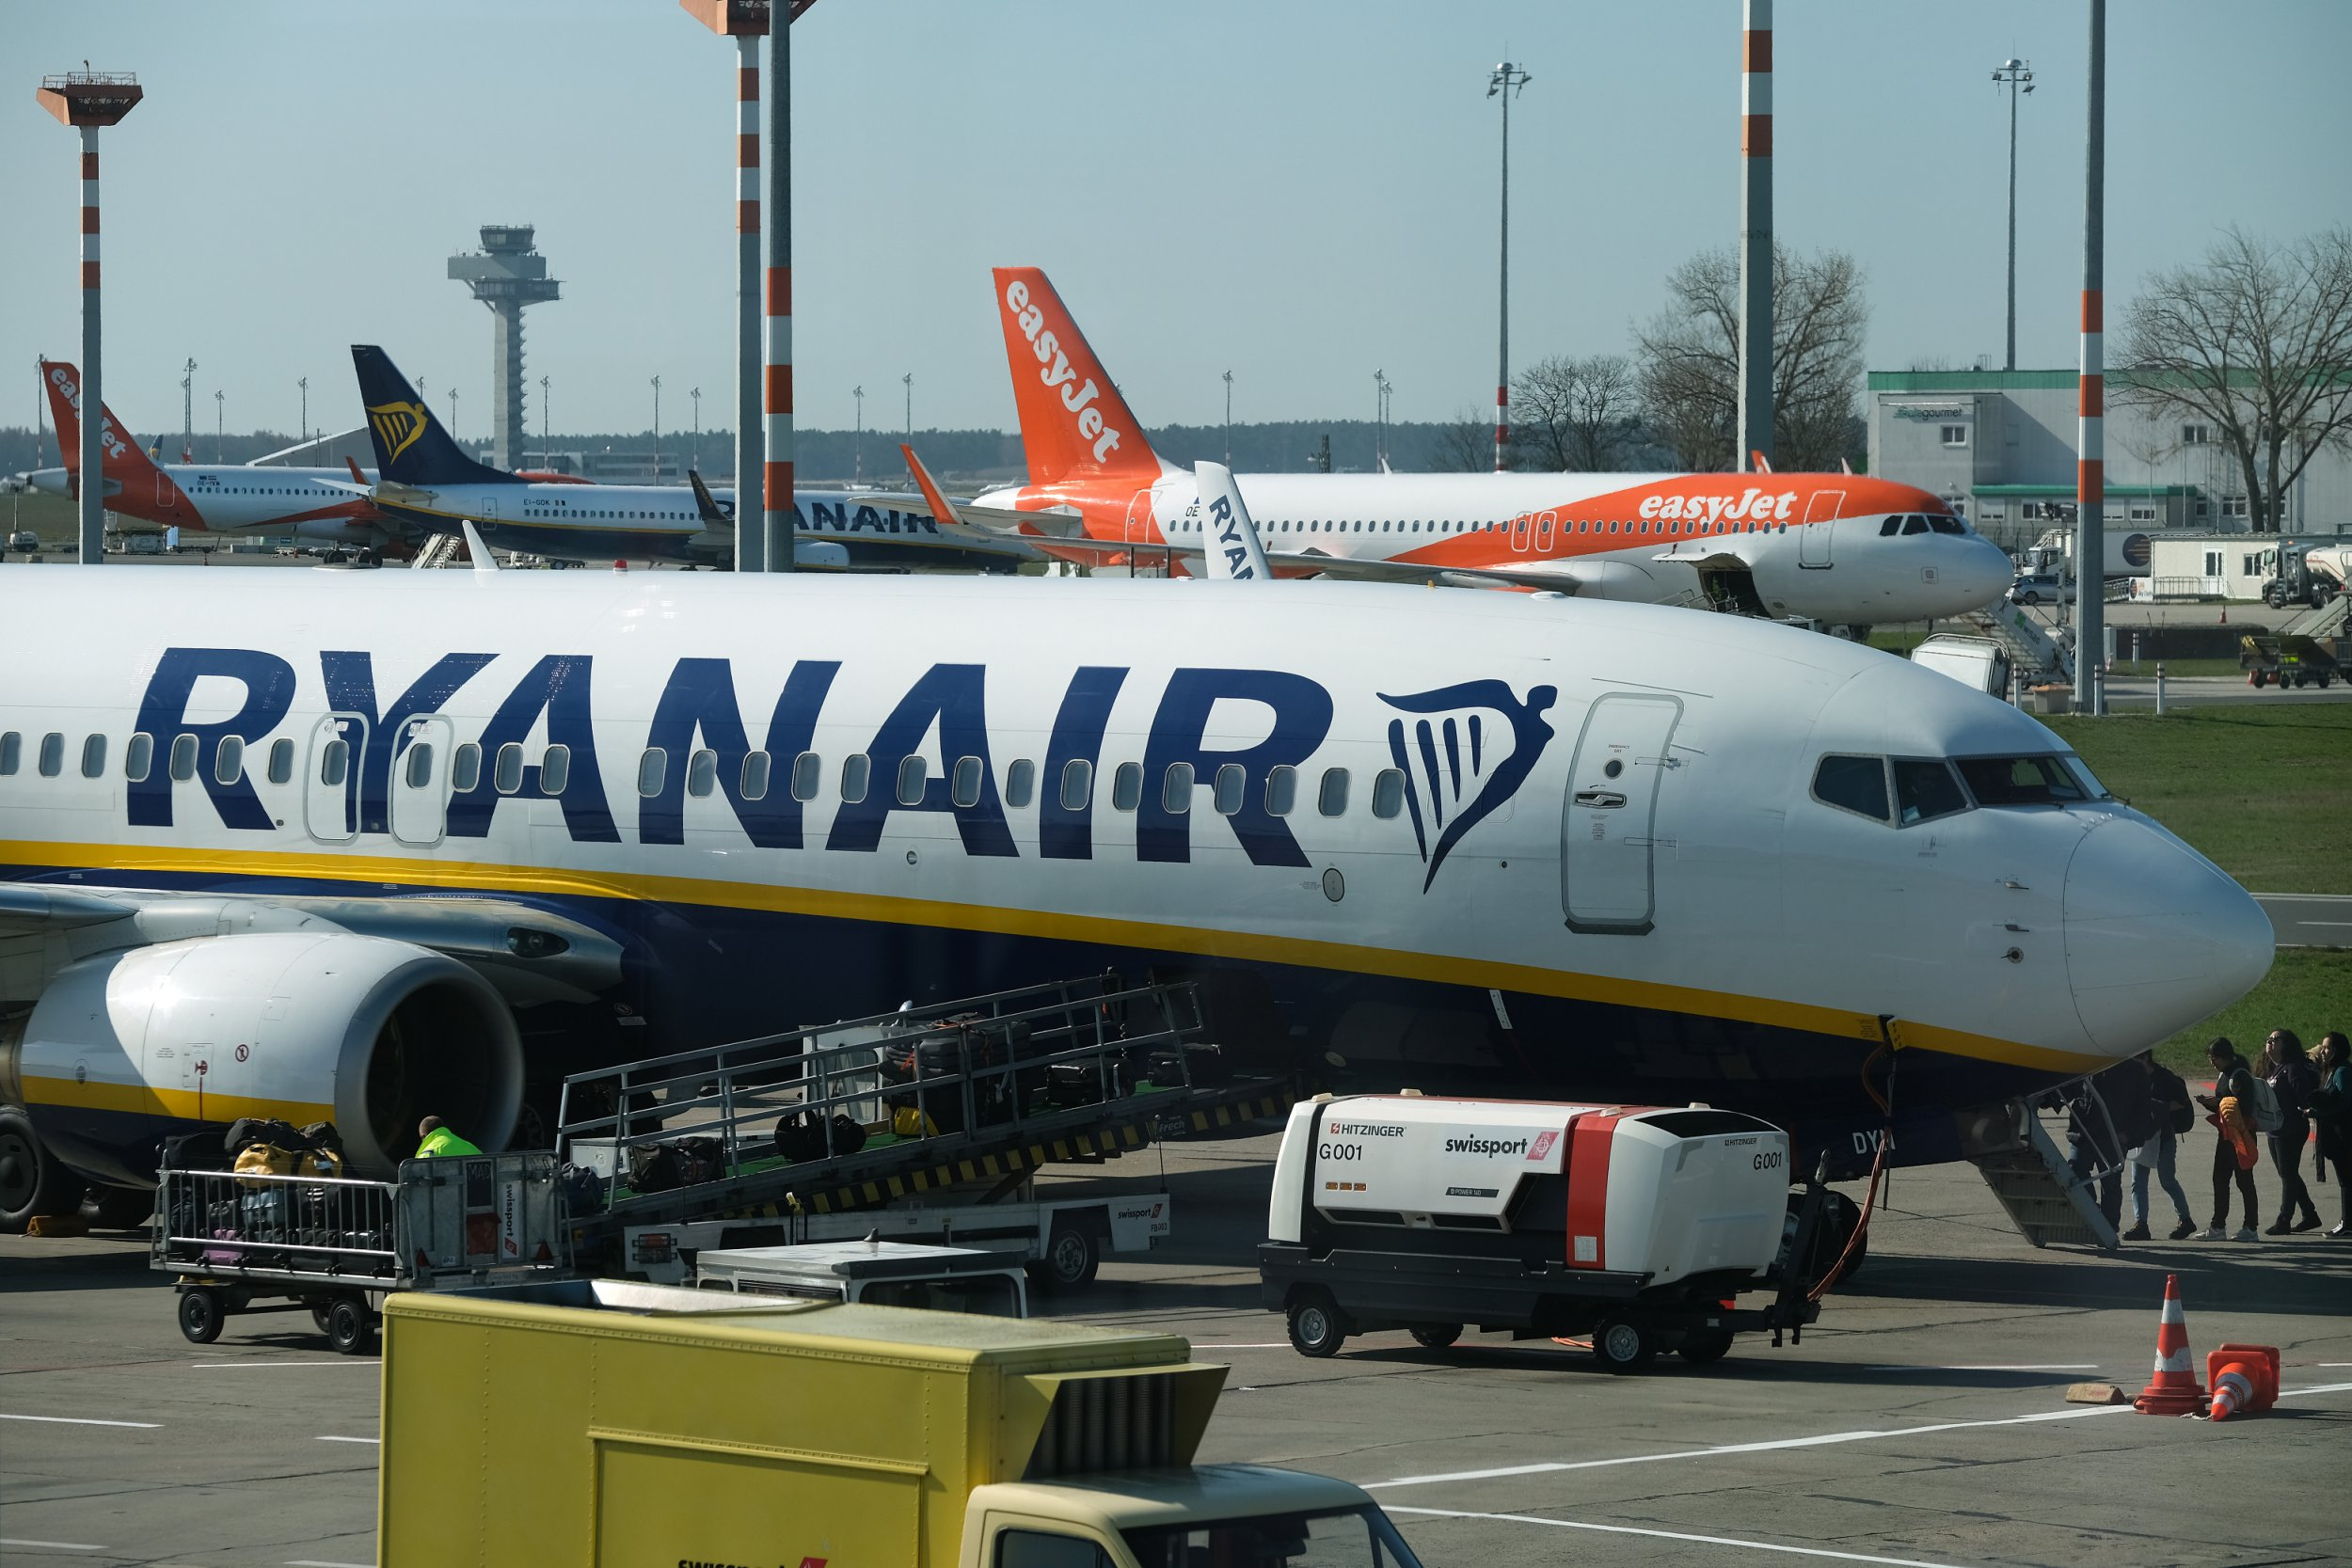 SCHOENEFELD, GERMANY - MARCH 20: Ryanair and easyJet passenger planes stand at Schoenefeld Airport near Berlin on March 20, 2019 in Schoenefeld, Germany. Schoenefeld has become a hub for the two discount airliners. (Photo by Sean Gallup/Getty Images)